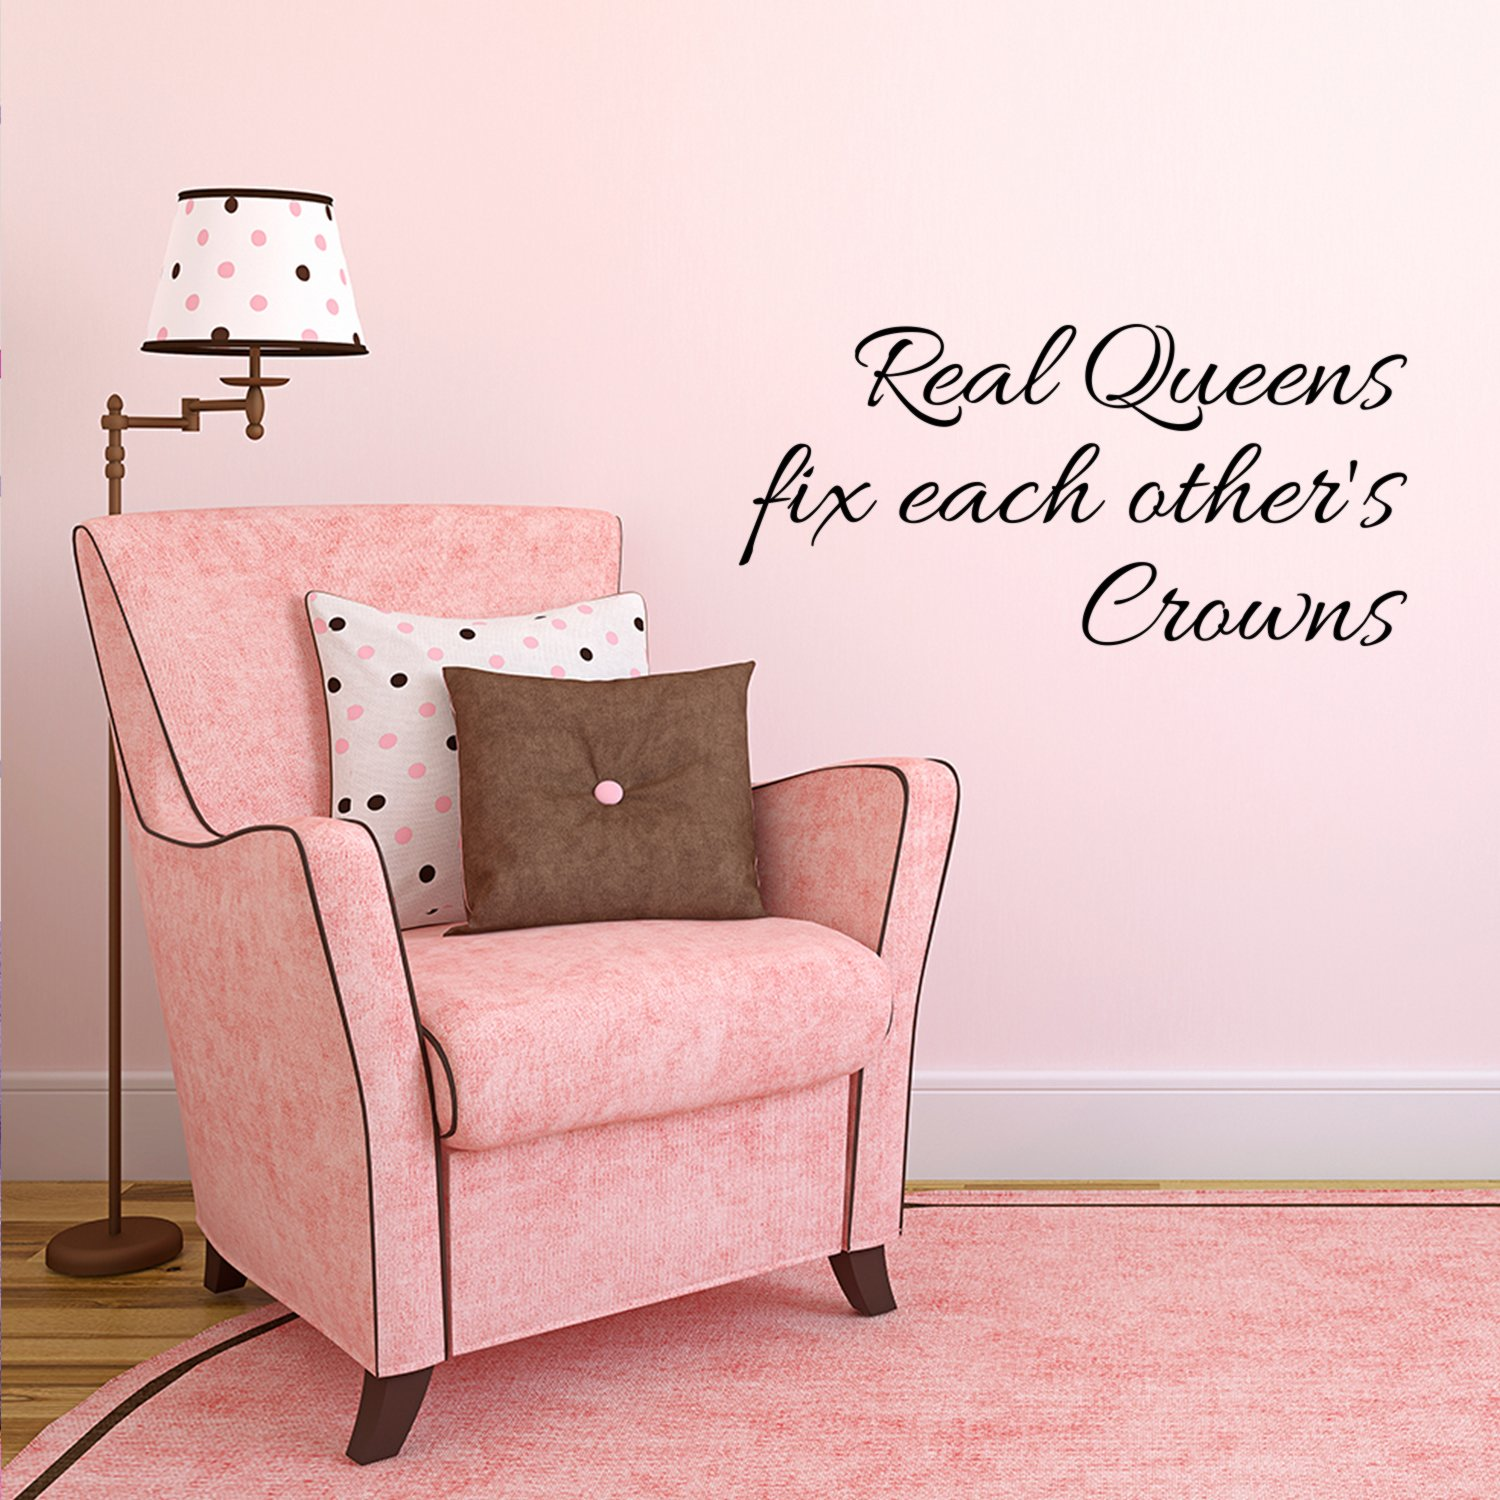 Real Queens Fix Each Others Crowns - Women's Inspirational Quotes Wall Art Vinyl Decal - 11'' X 22'' Decoration Vinyl Stickers - Motivational Wall Decal - Bedroom Living Room Decor - Trendy Wall Art